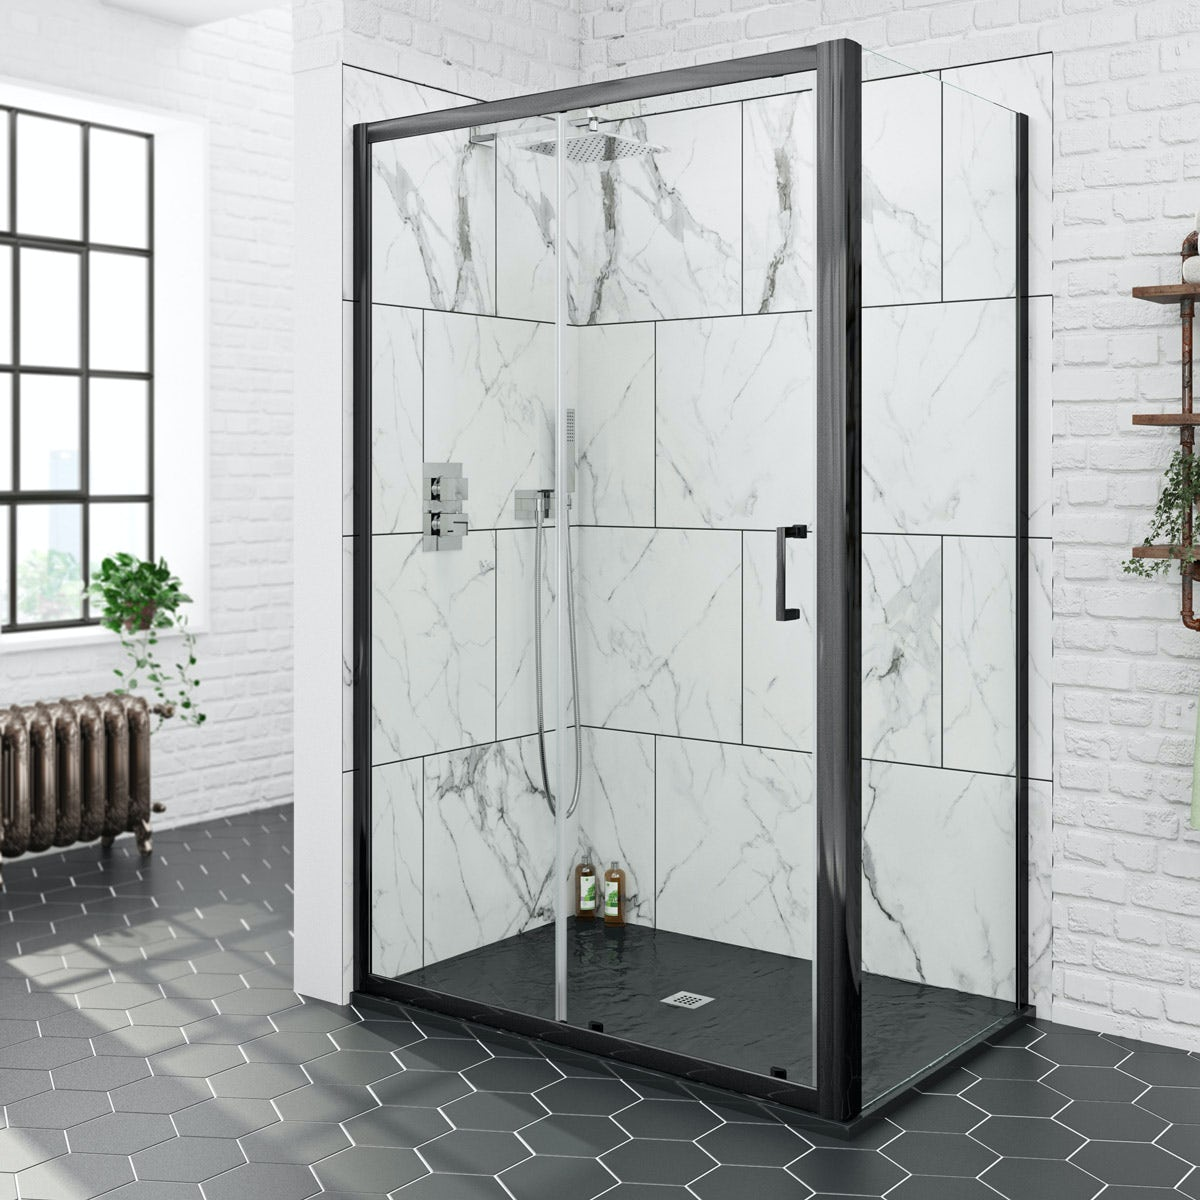 Mode black 6mm sliding shower enclosure with black slate effect tray 1200 x 800